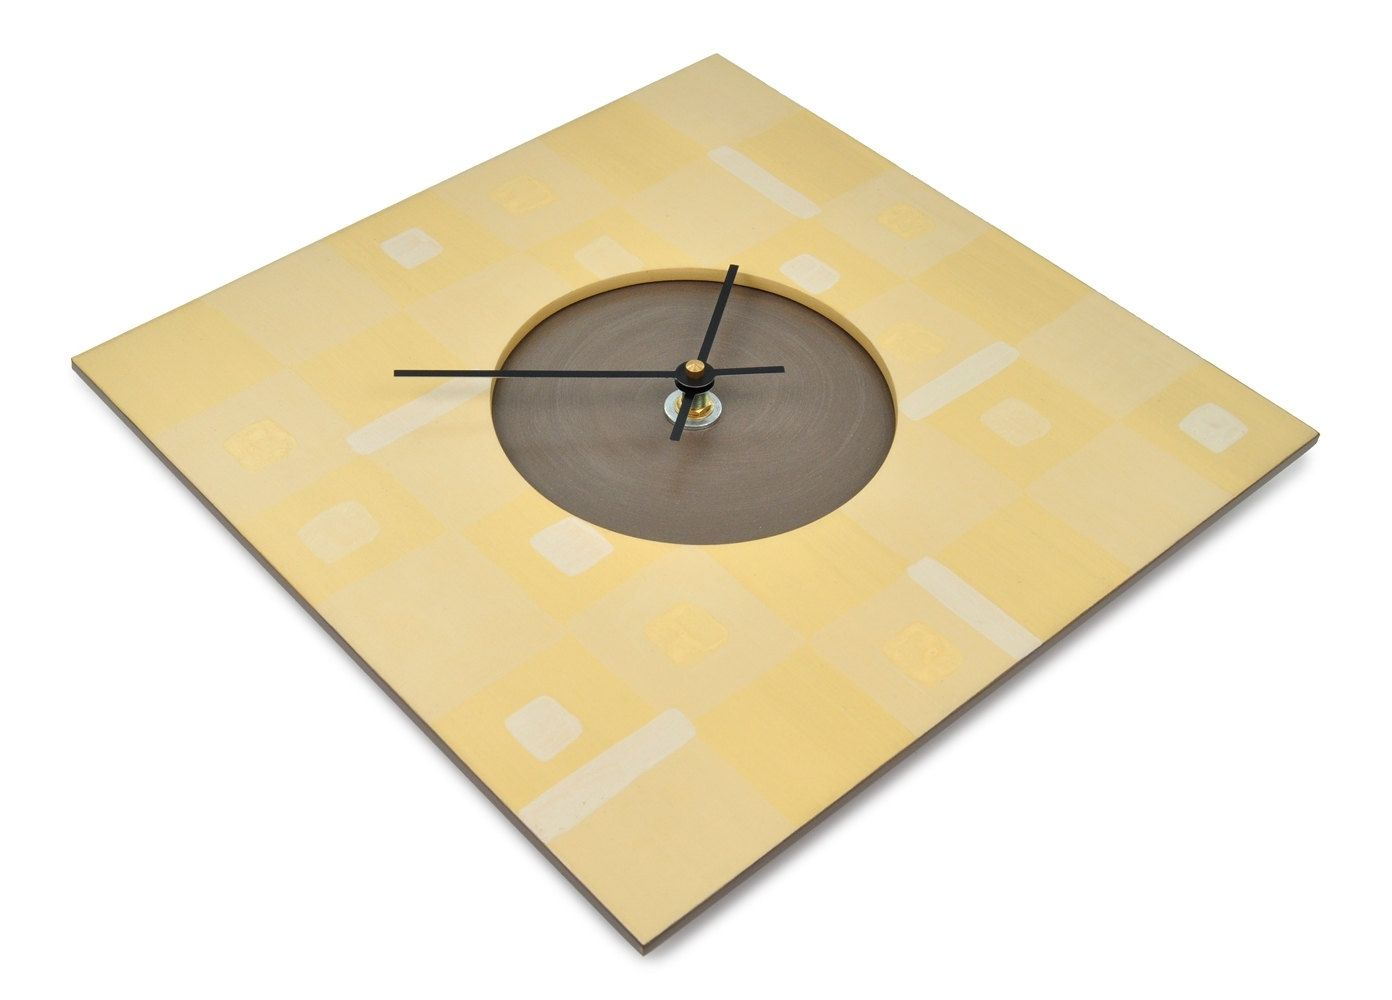 Custom made wall clock yellow boxes design 115 x 115 square custom made wall clock yellow boxes design 115 x 115 square clock ready amipublicfo Gallery